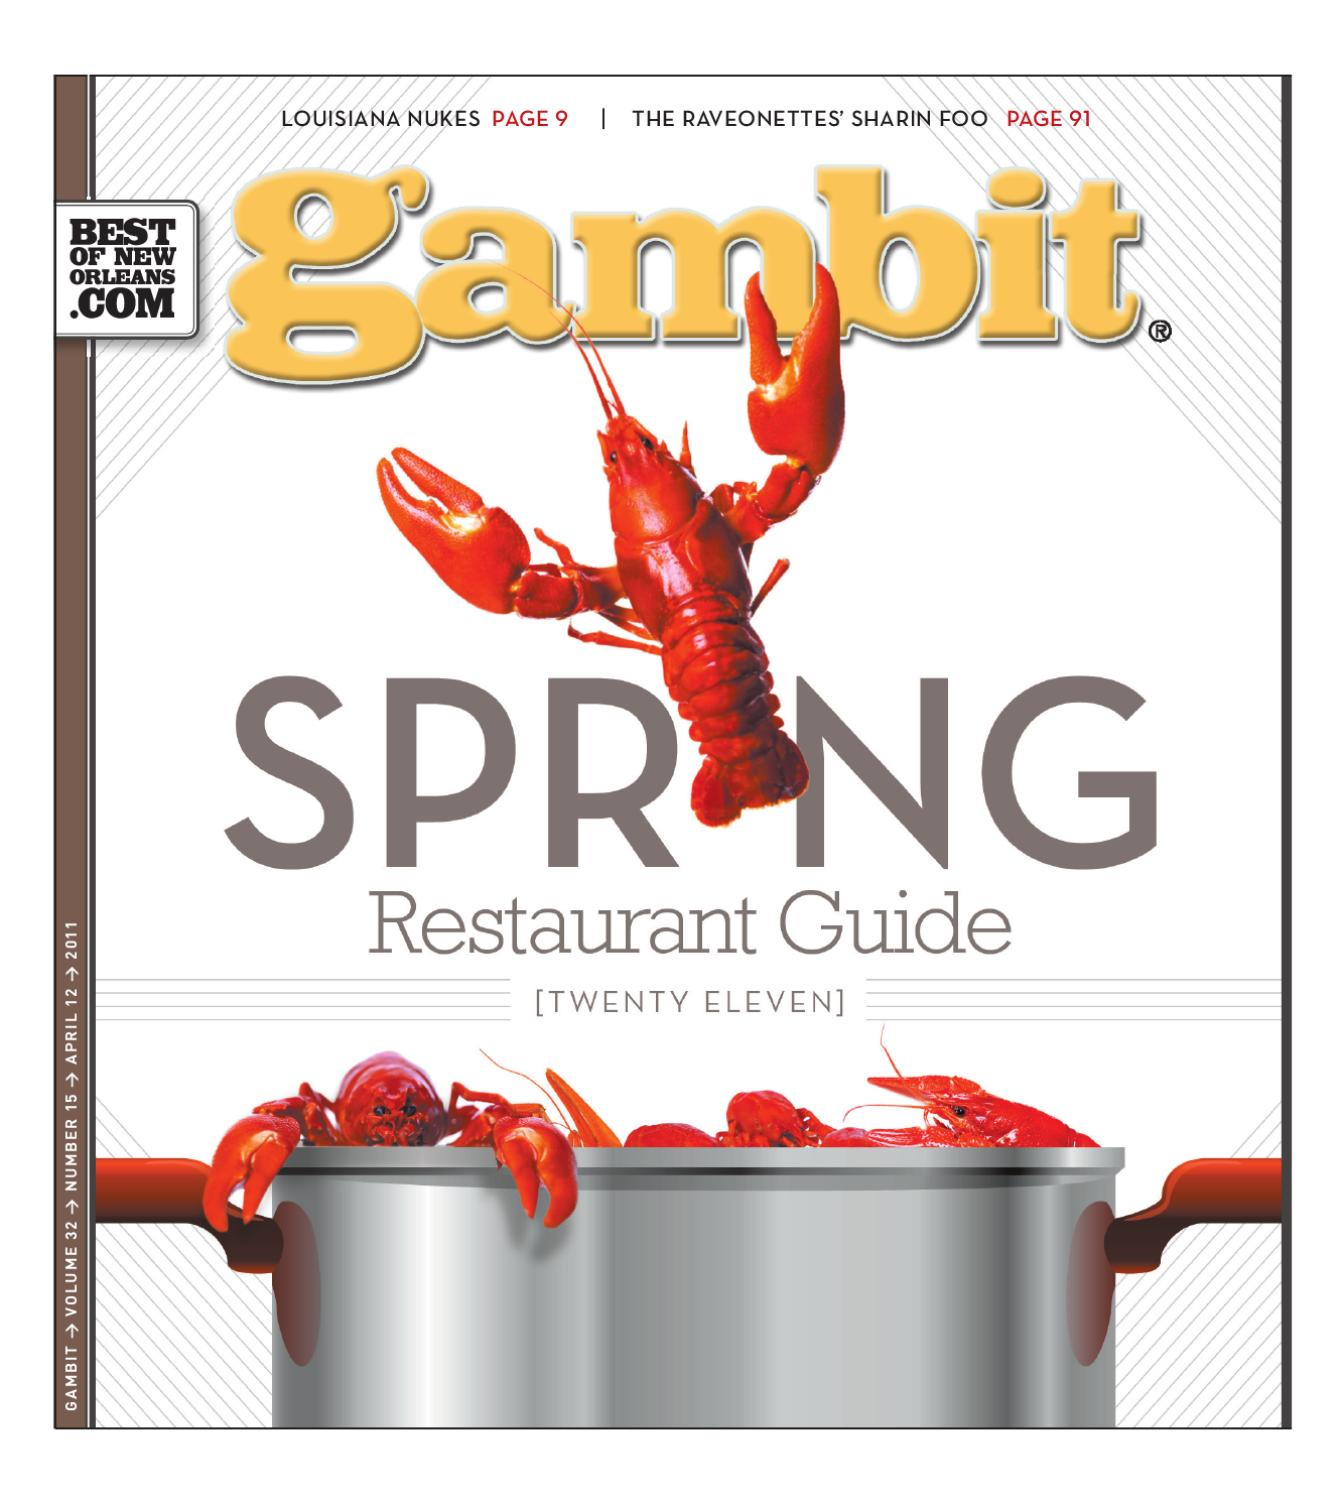 Gambit\'s 2011 Spring Restaurant Guide by Gambit New Orleans - issuu